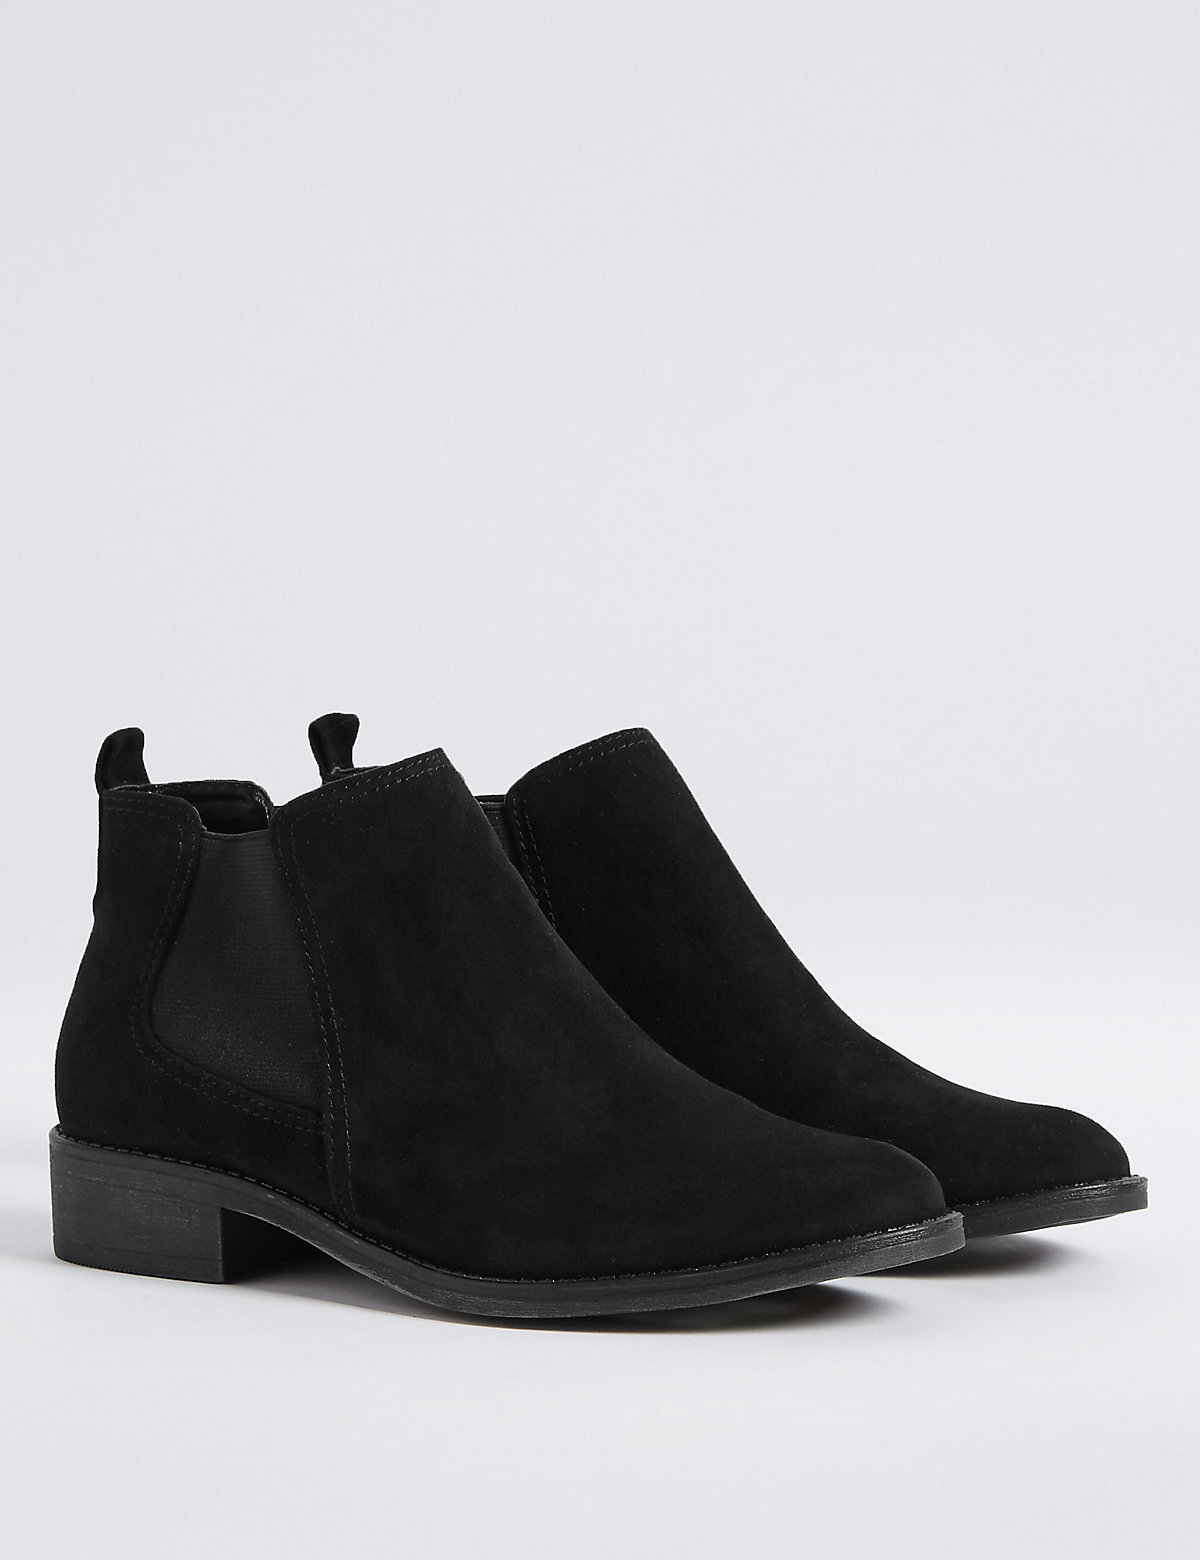 Women's Dark Grey Ankle Boots Boots Boots Mid Wedged Wide Fit Chelsea For The Sole Mid Heel